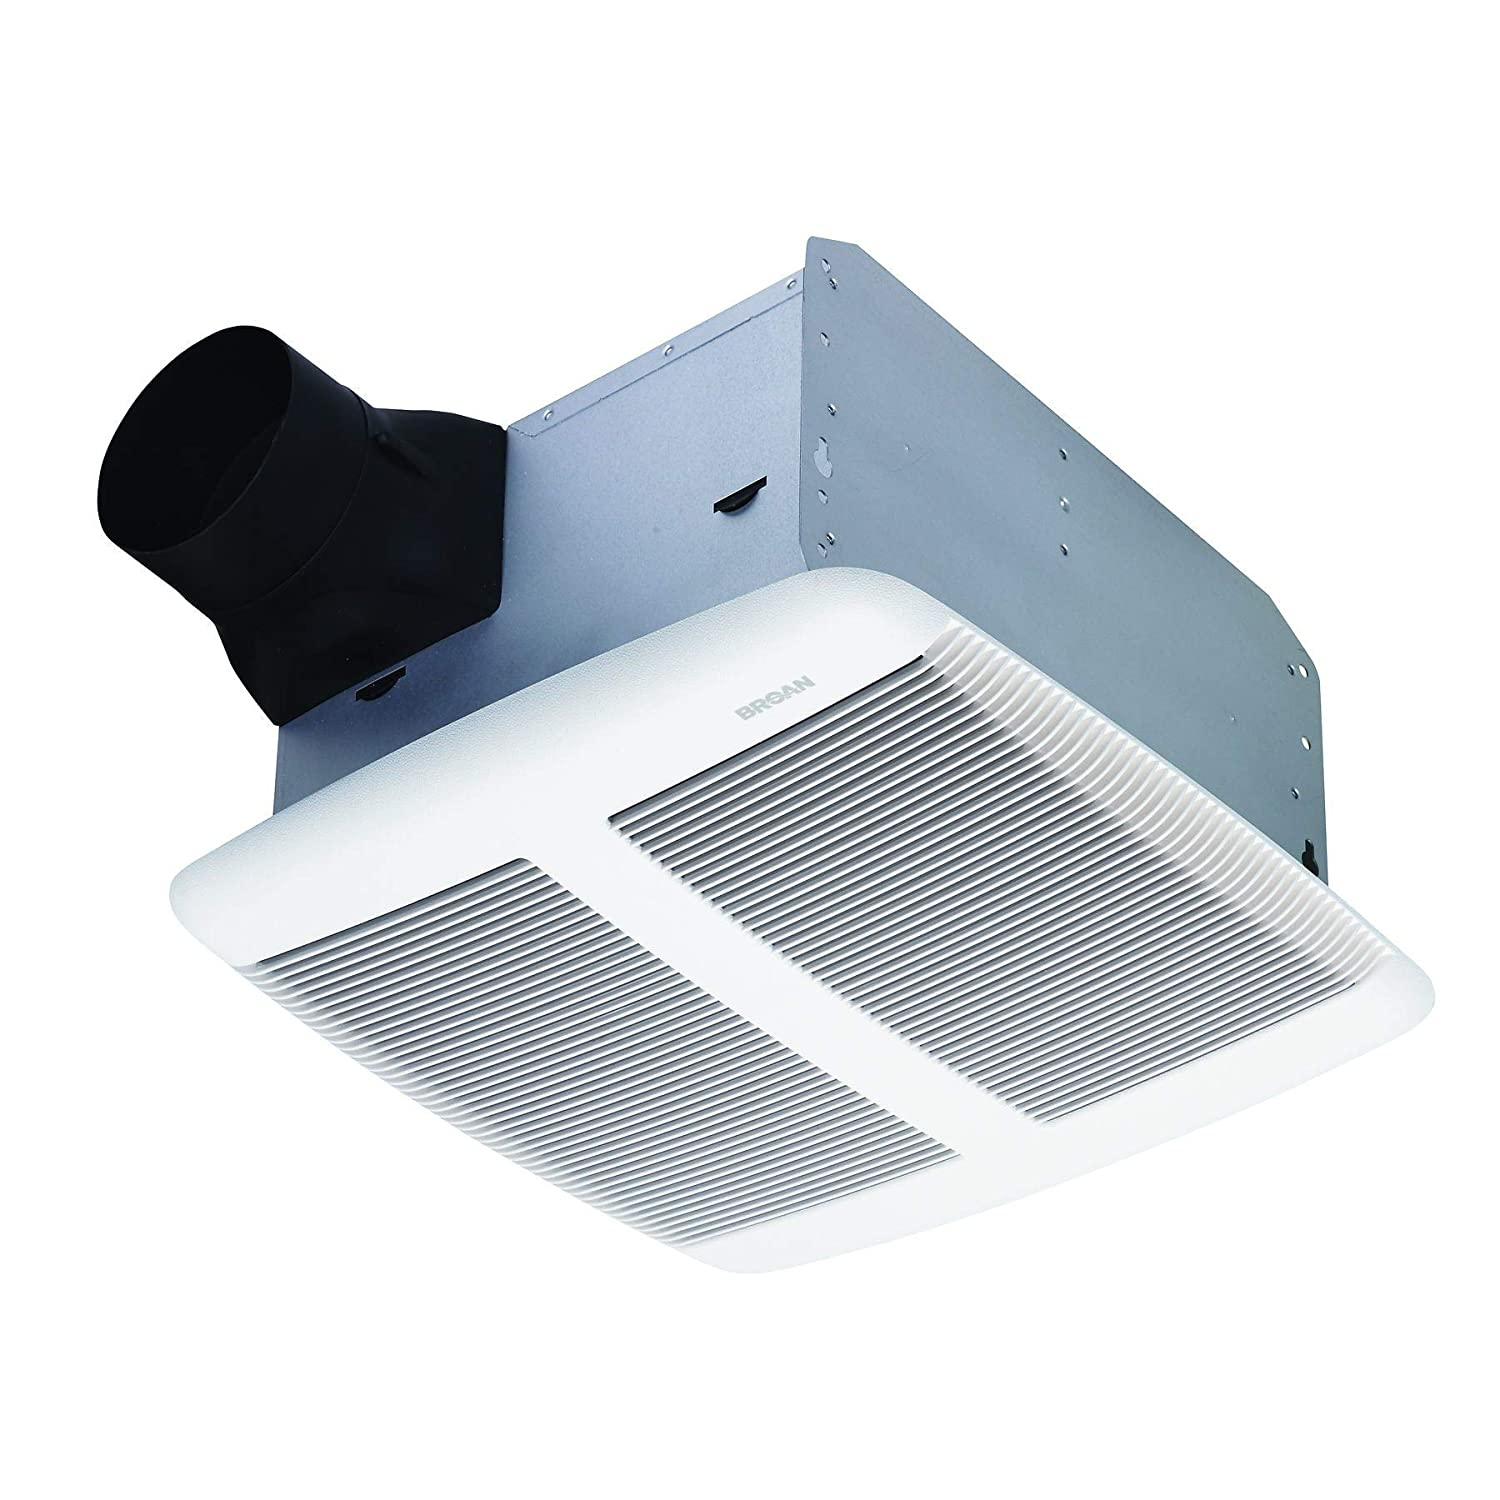 Broan Sensonic Bathroom Exhaust Fan with Bluetooth Speaker